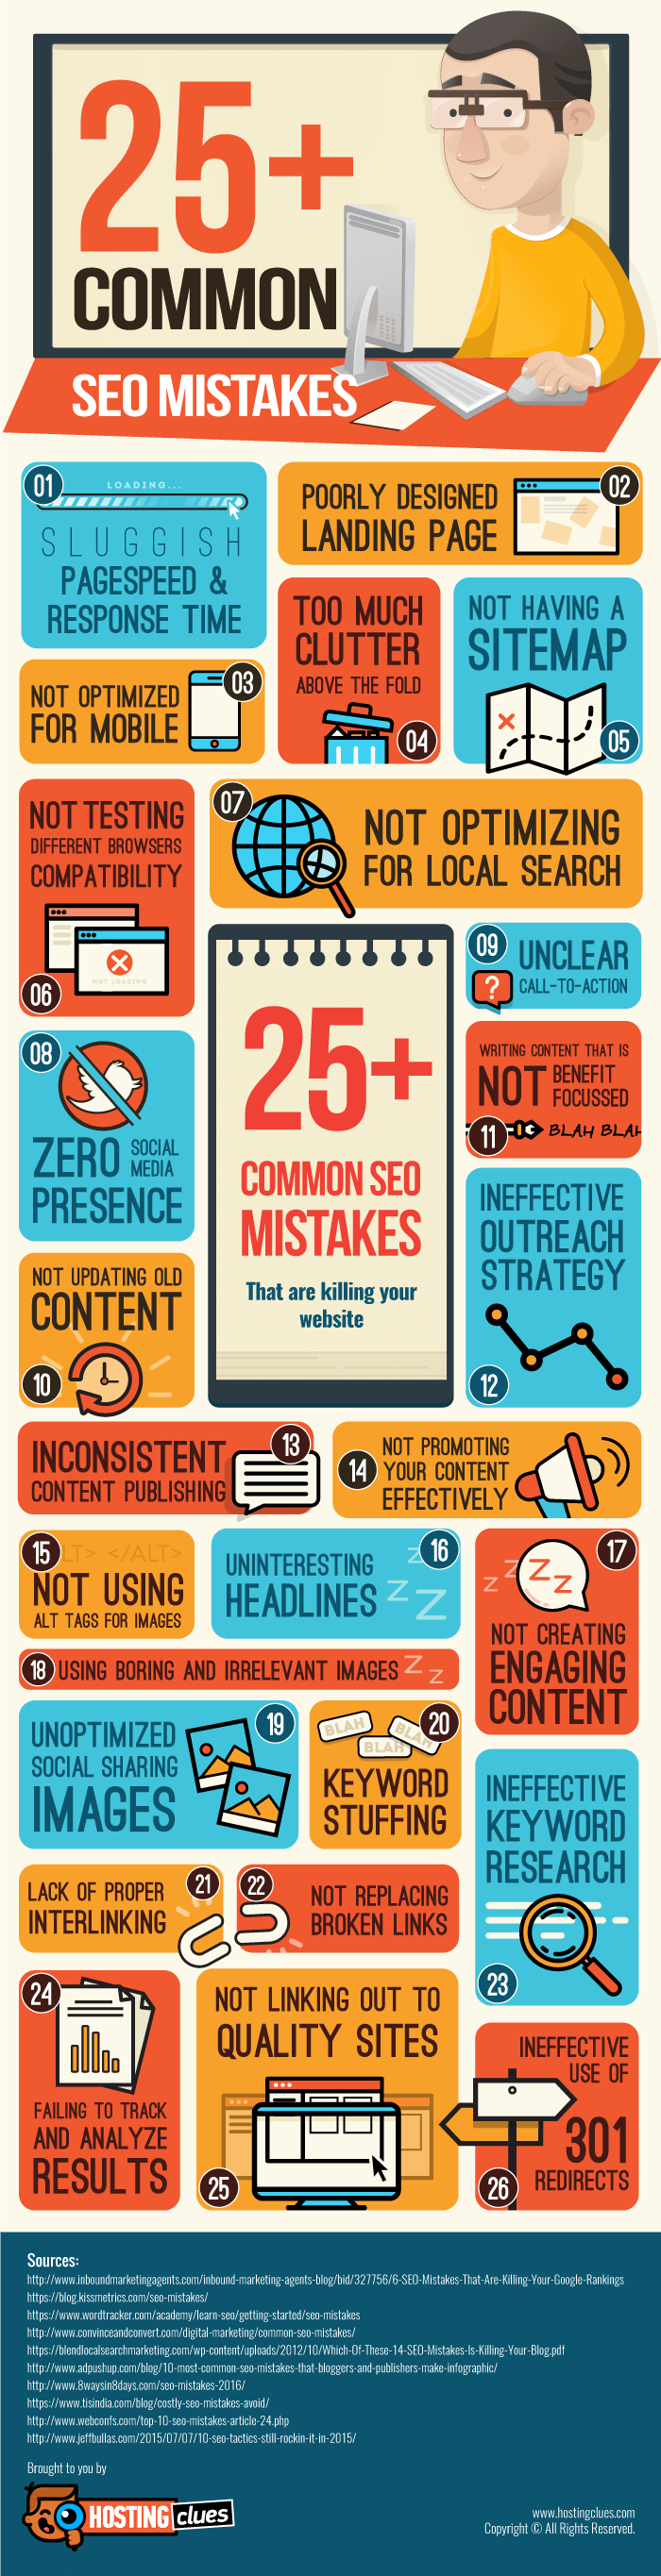 5 common SEO mistakes you need to fix [Infographic] | Smart Insights